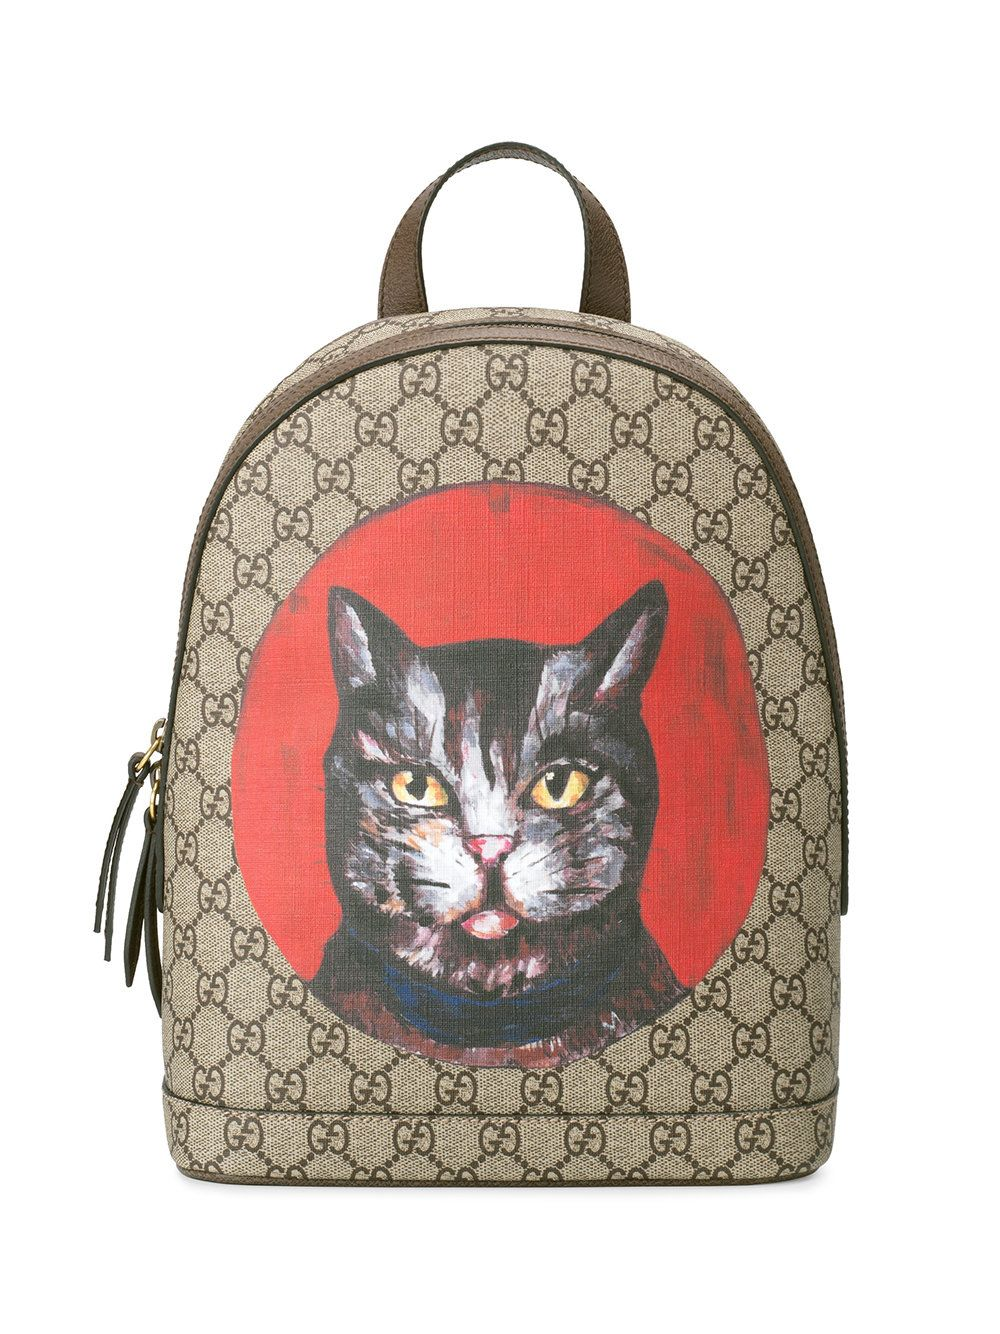 c24b901cc6db Gucci Mystic Cat GG Supreme Backpack | Meow | Cat backpack, Supreme ...